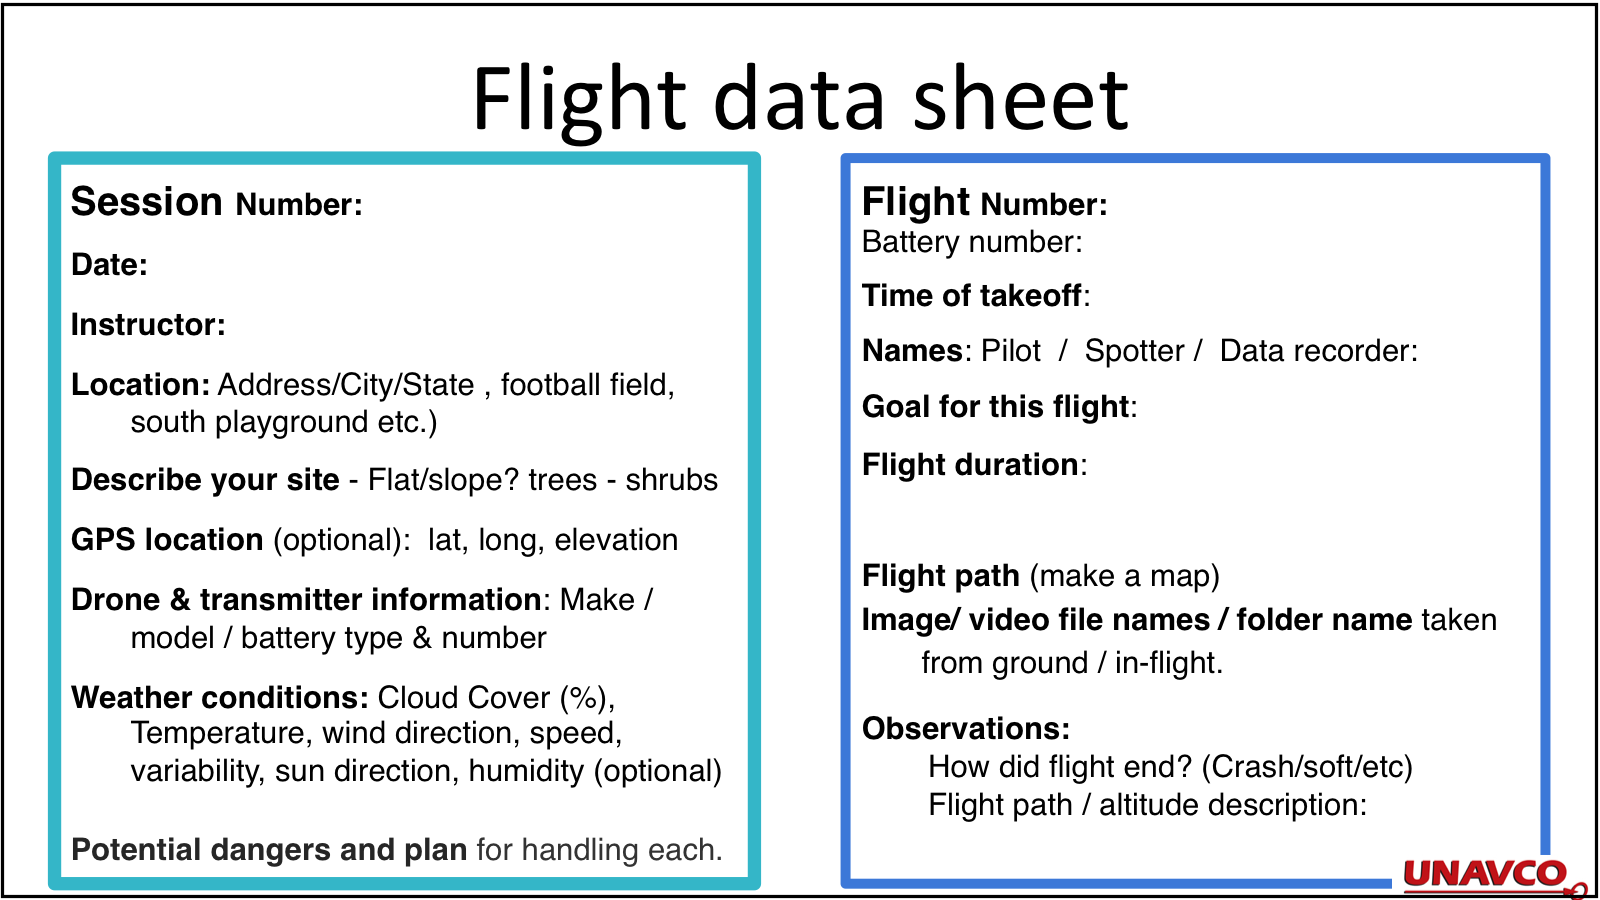 Flight data sheet